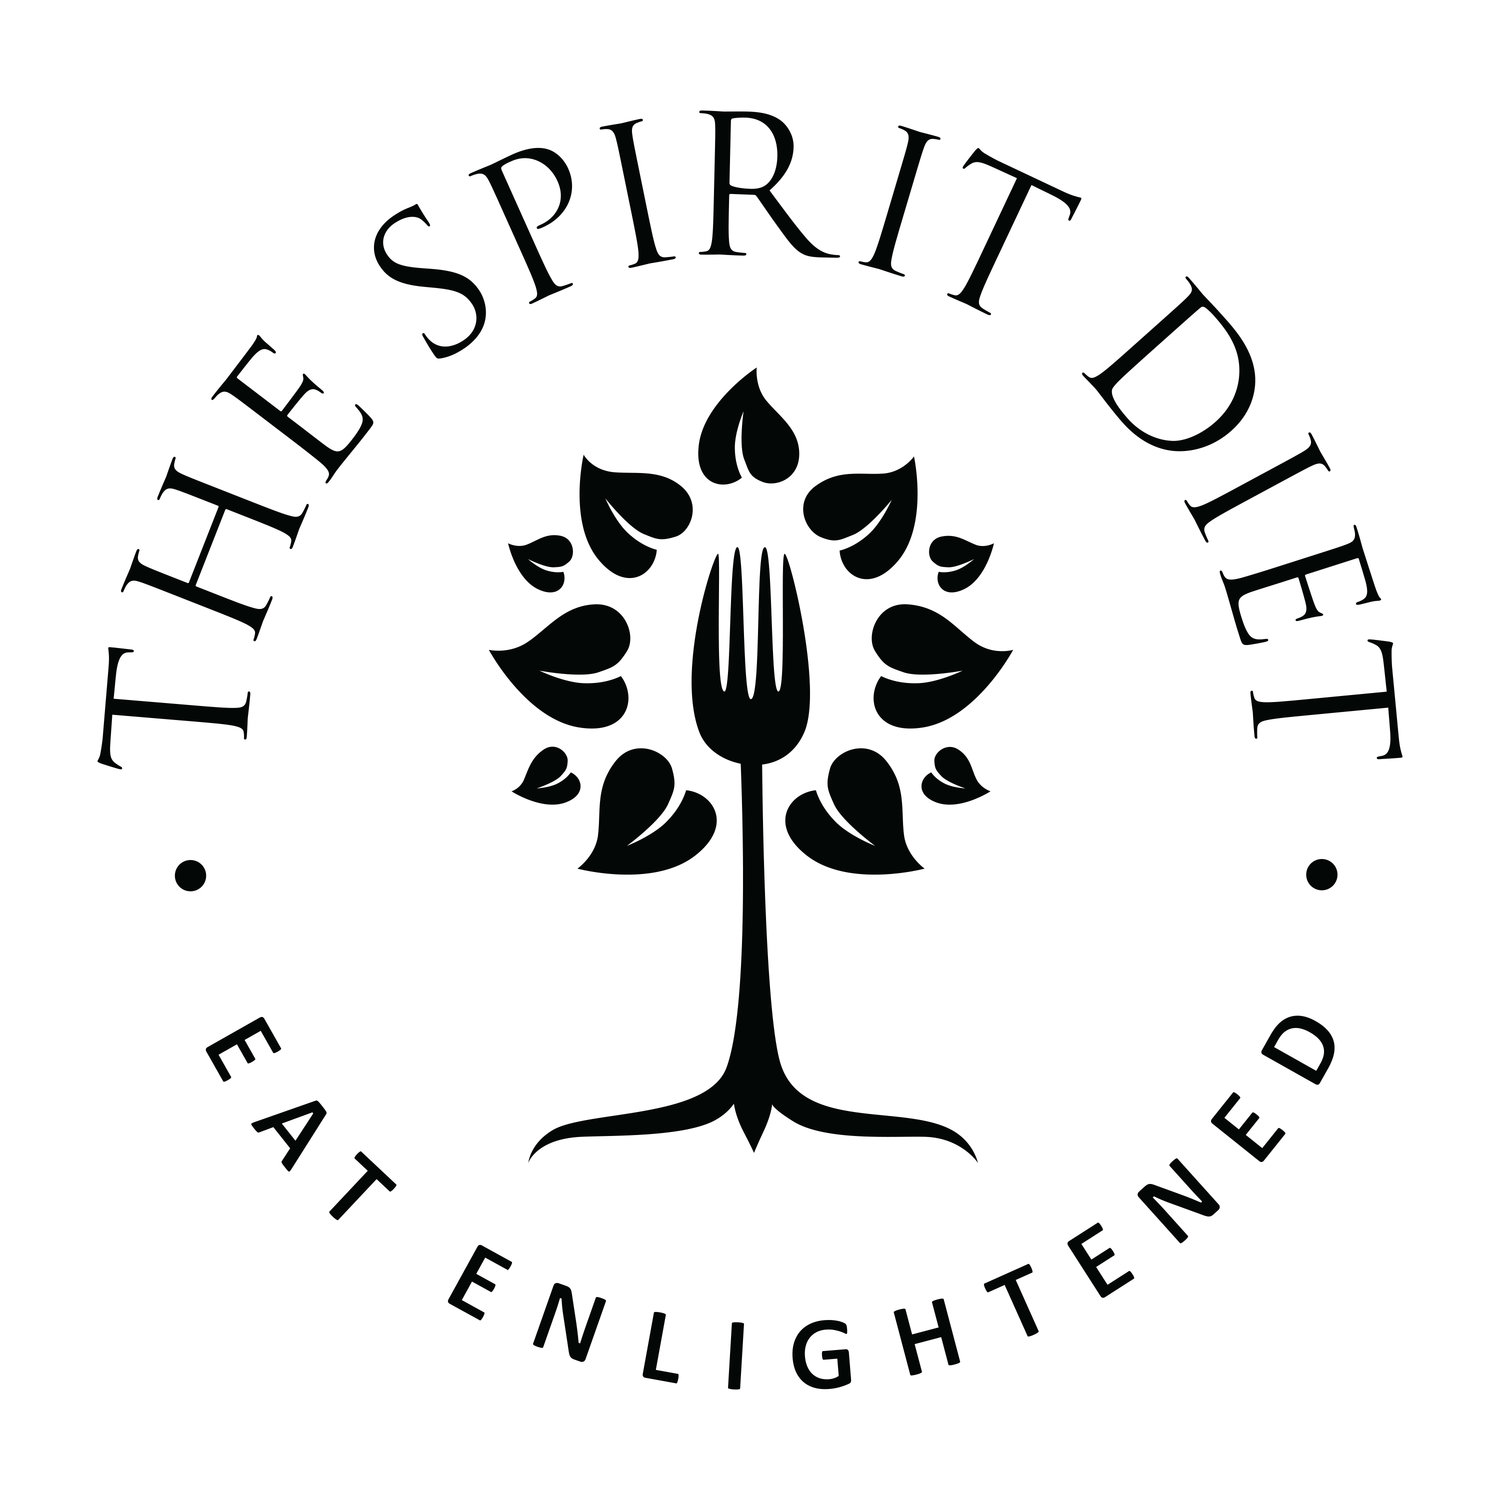 The Spirit Diet